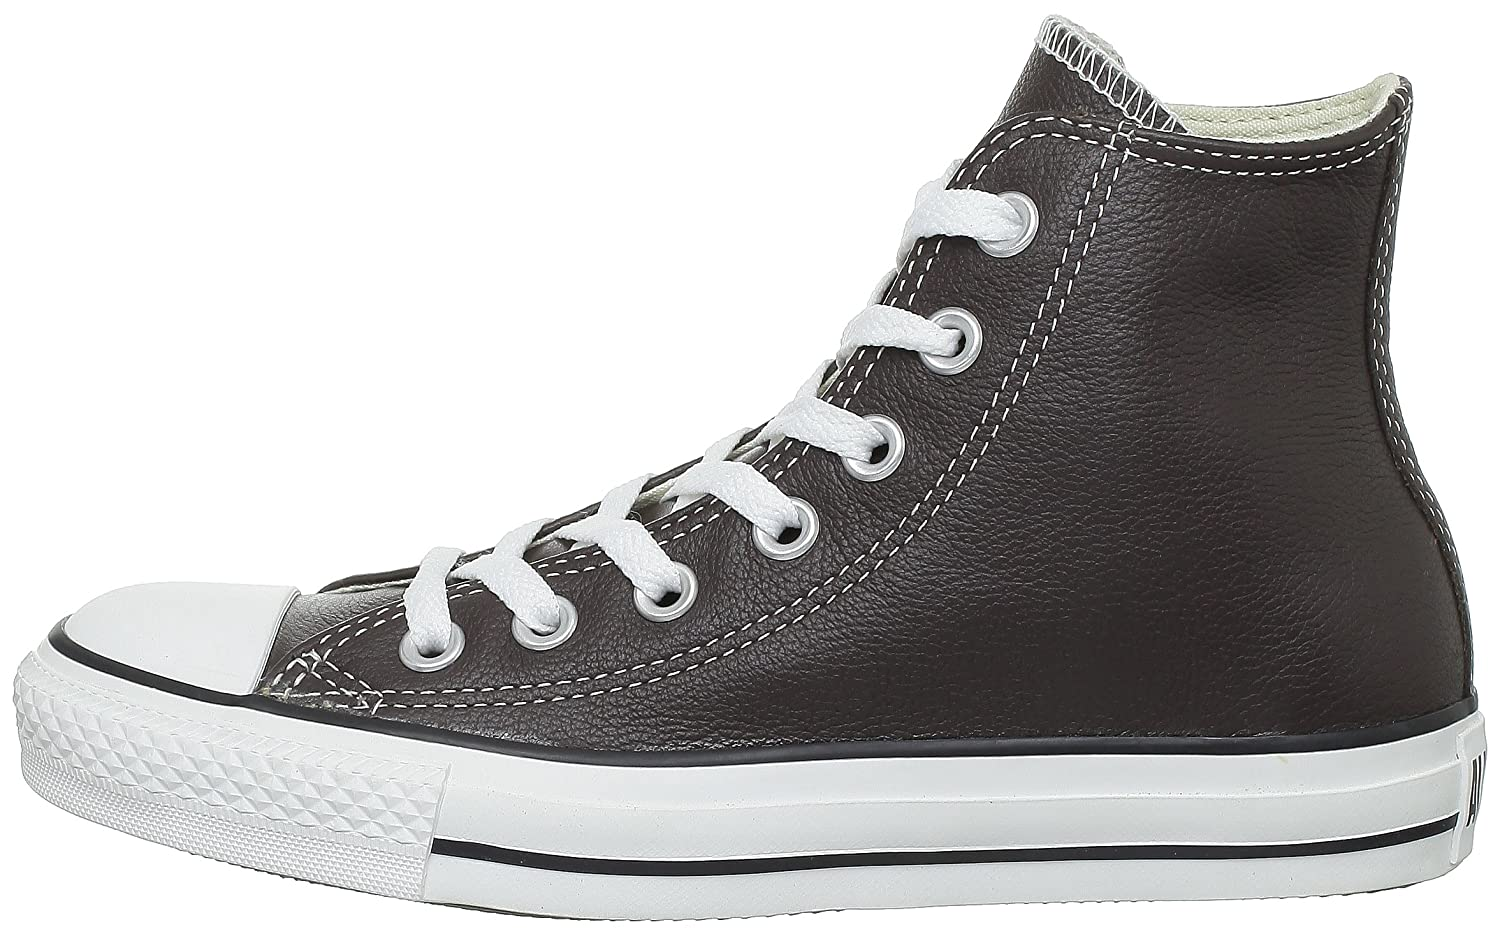 Converse Chuck Taylor All Star Leather High Top Sneaker B006OCANPA / 11 B(M) US Women / B006OCANPA 9 D(M) US Men|Chocolate 804cbc